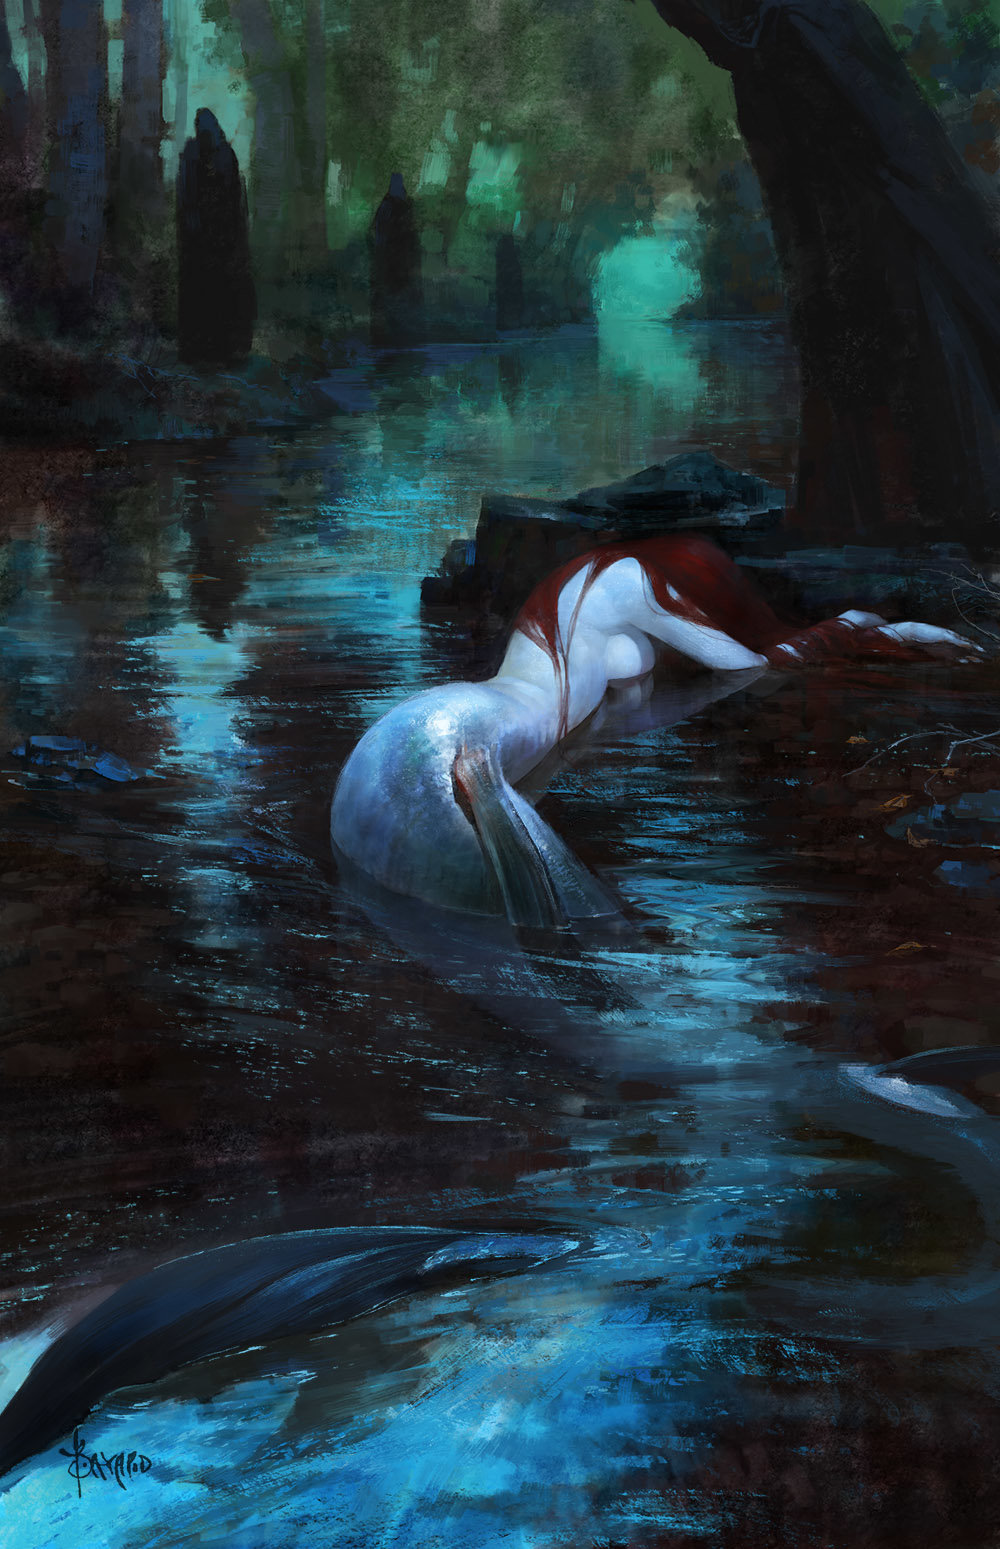 Mermaid Concept Art and Illustrations   Concept Art World     assortment of mythical creatures such as mermaids  mermen and sirens  created by the many talented artists featured on Concept Art World